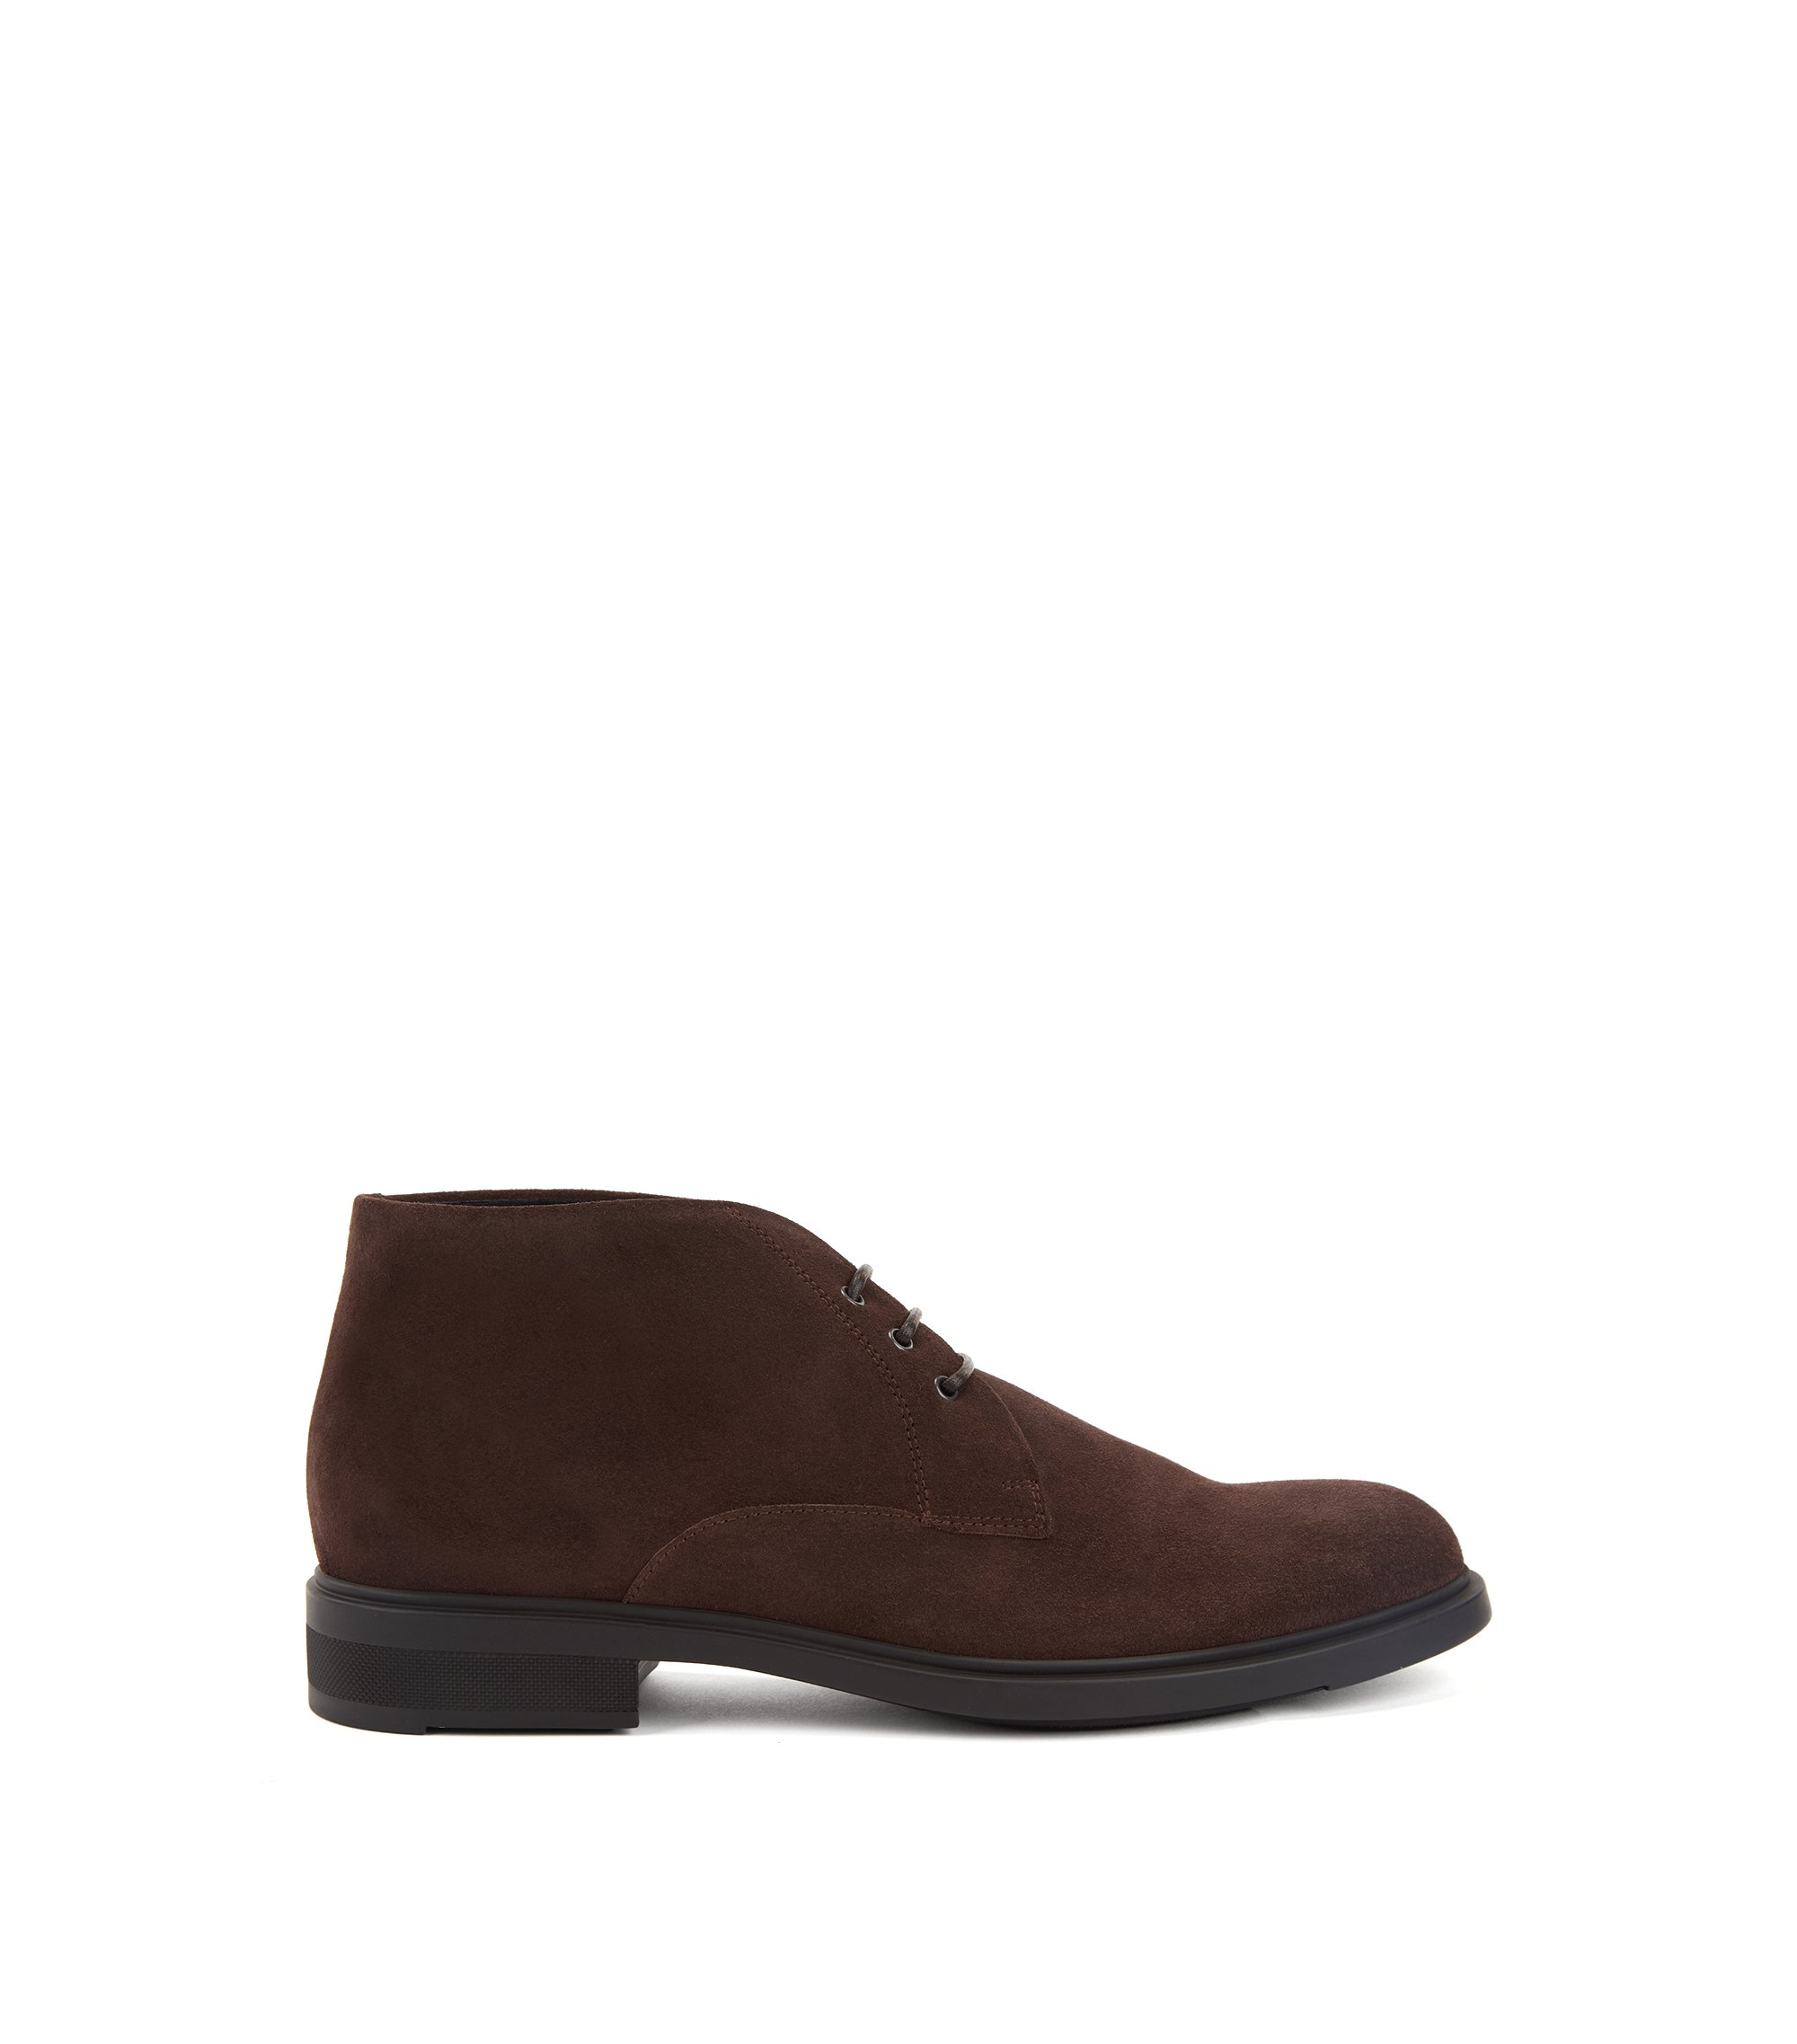 Desert boot in pelle scamosciata impermeabile con fodera interna Outlast®, Marrone scuro